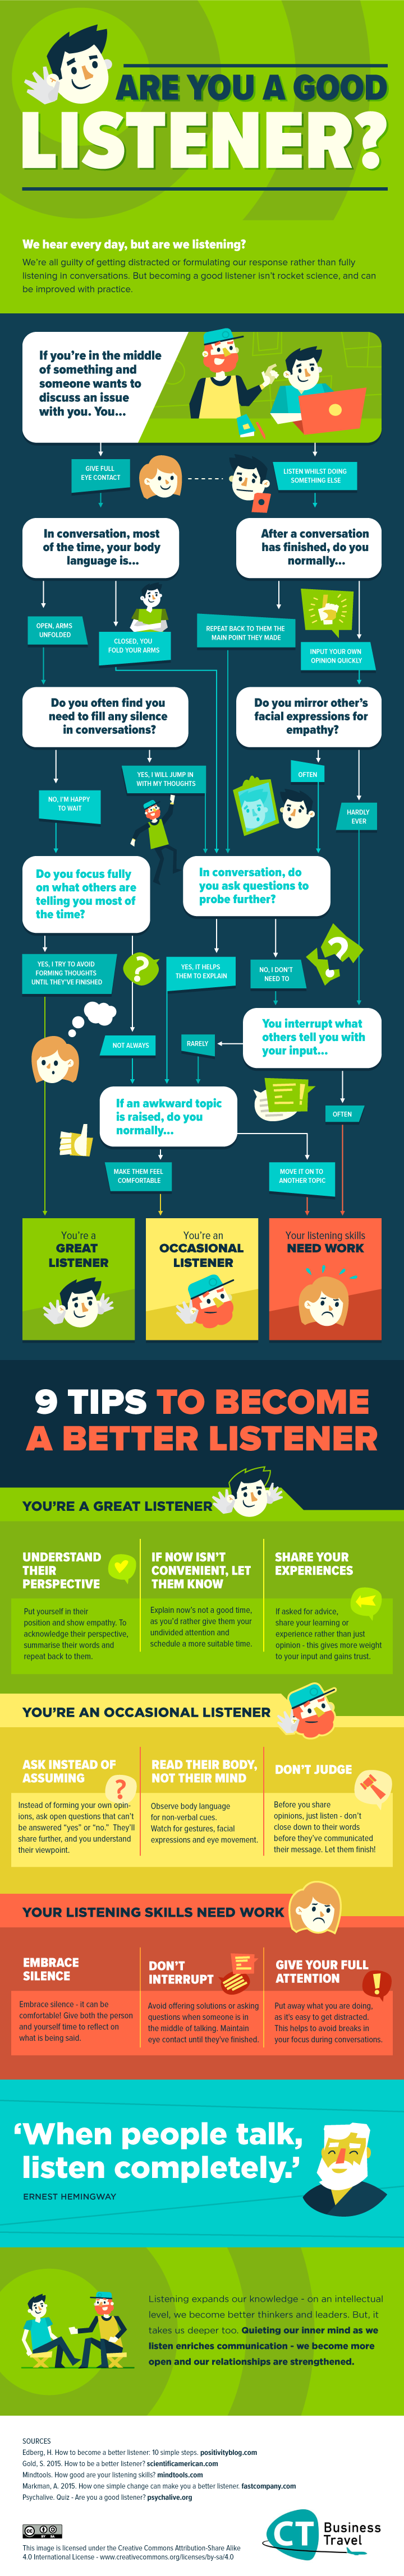 tips for being a good conversationalist